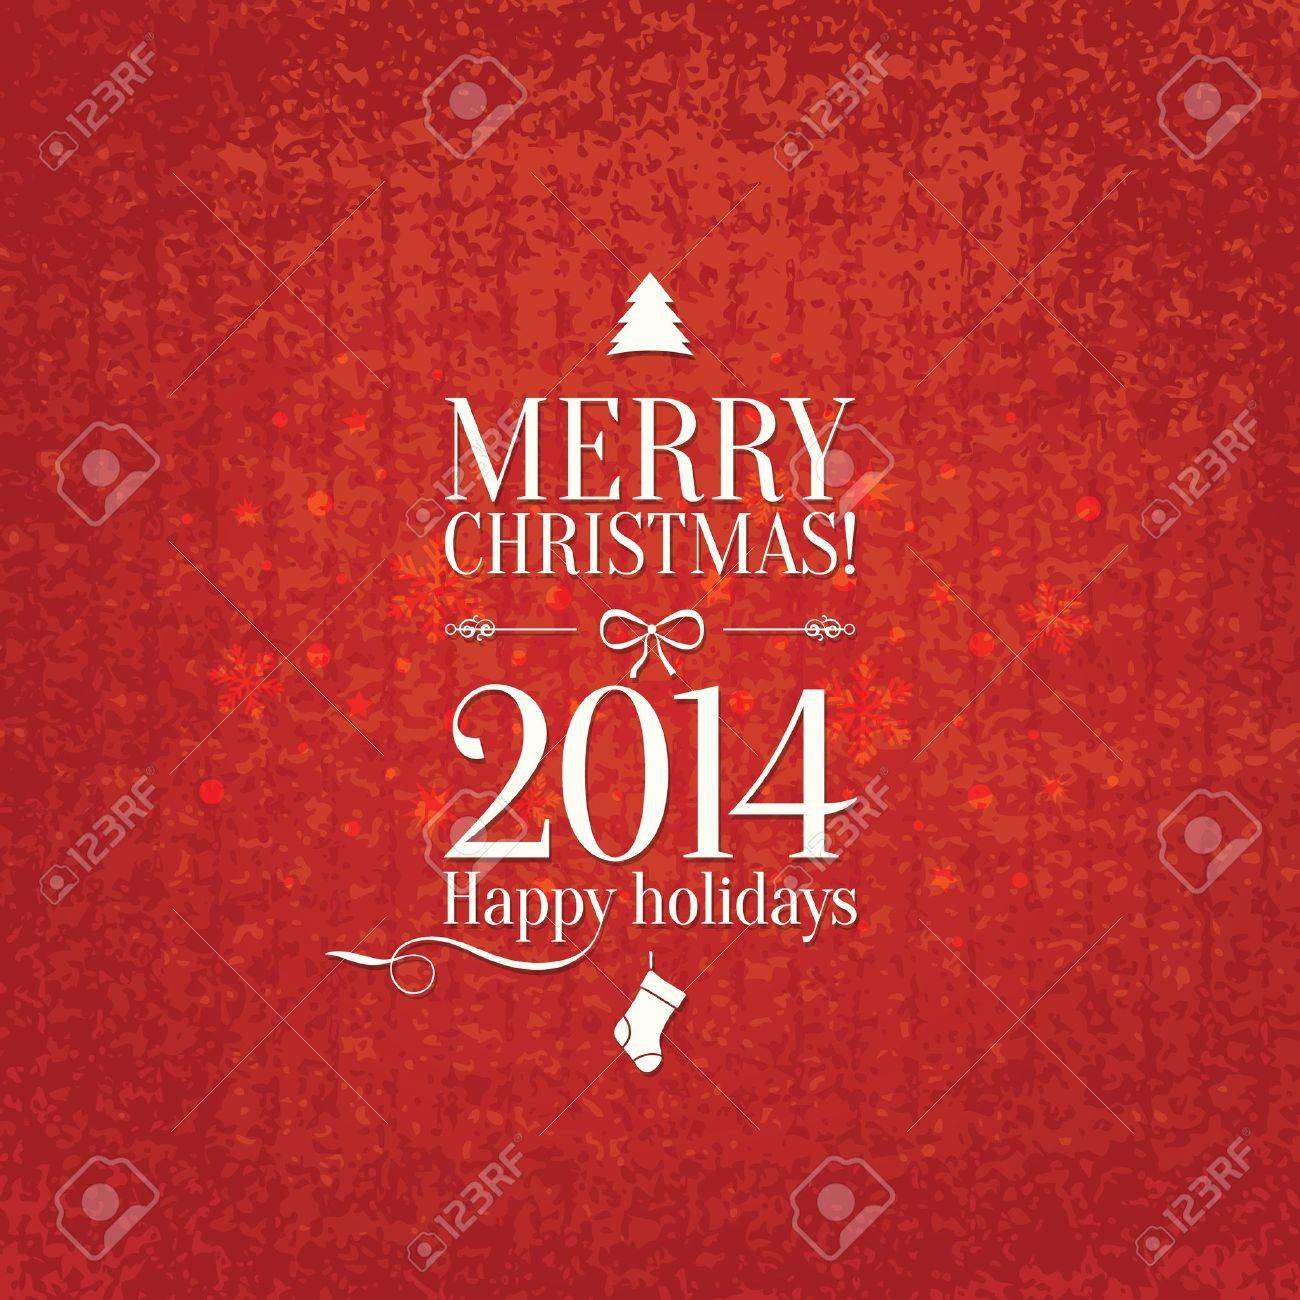 Christmas and New Year  Vector greeting card Stock Vector - 21953415